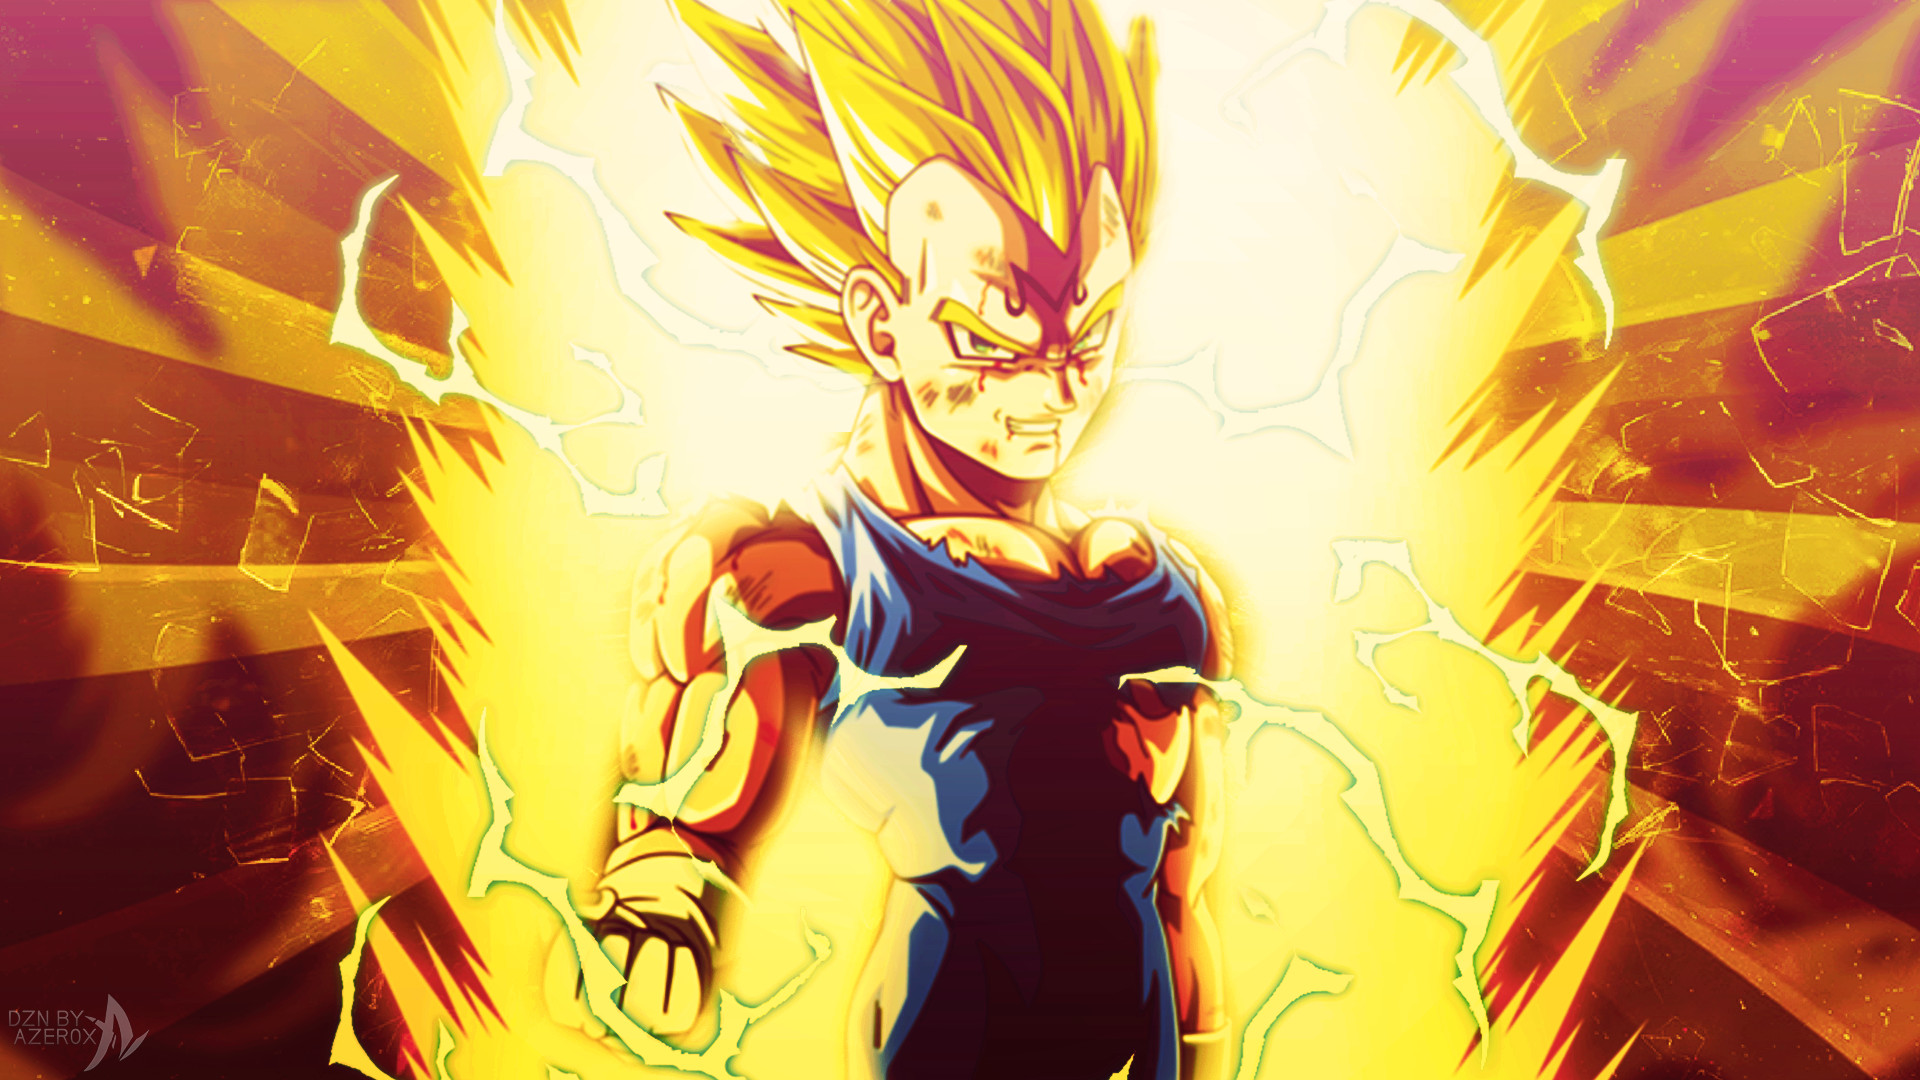 Majin vegeta wallpapers wallpapertag - Dragon ball z majin vegeta wallpaper ...